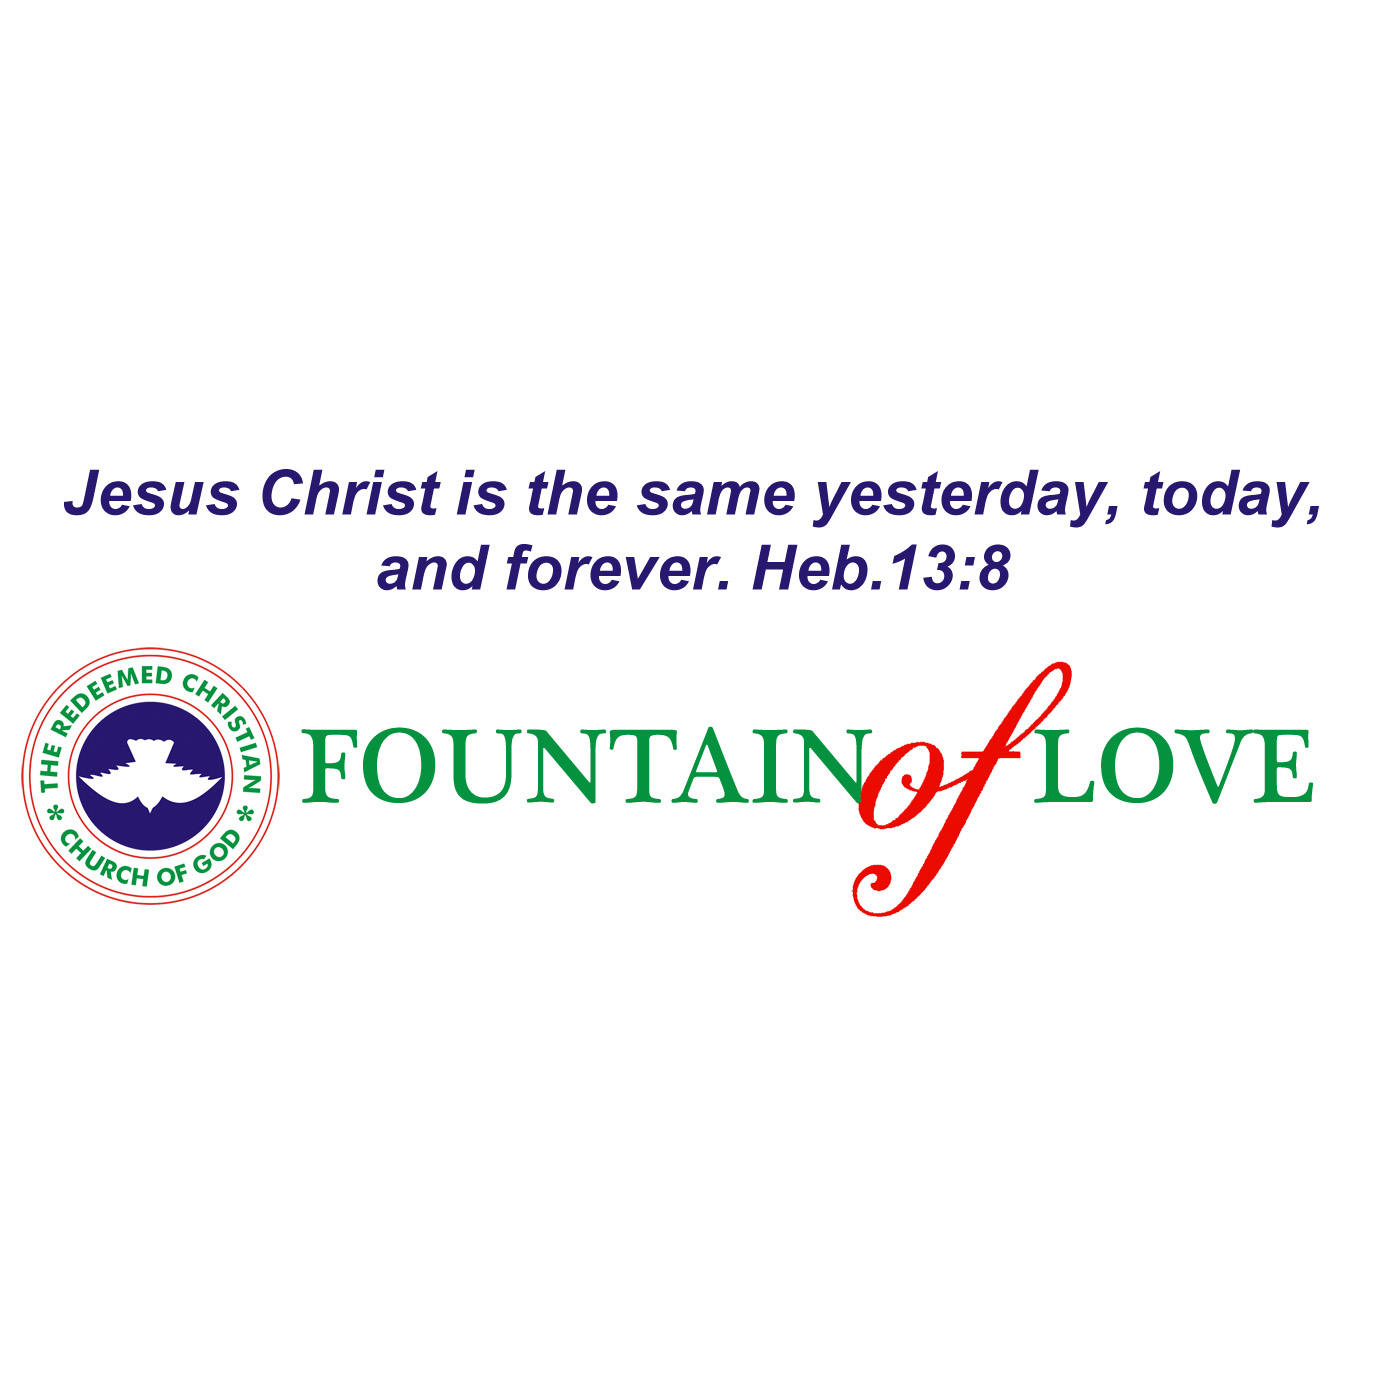 Fountain of Love, RCCG Aberdeen